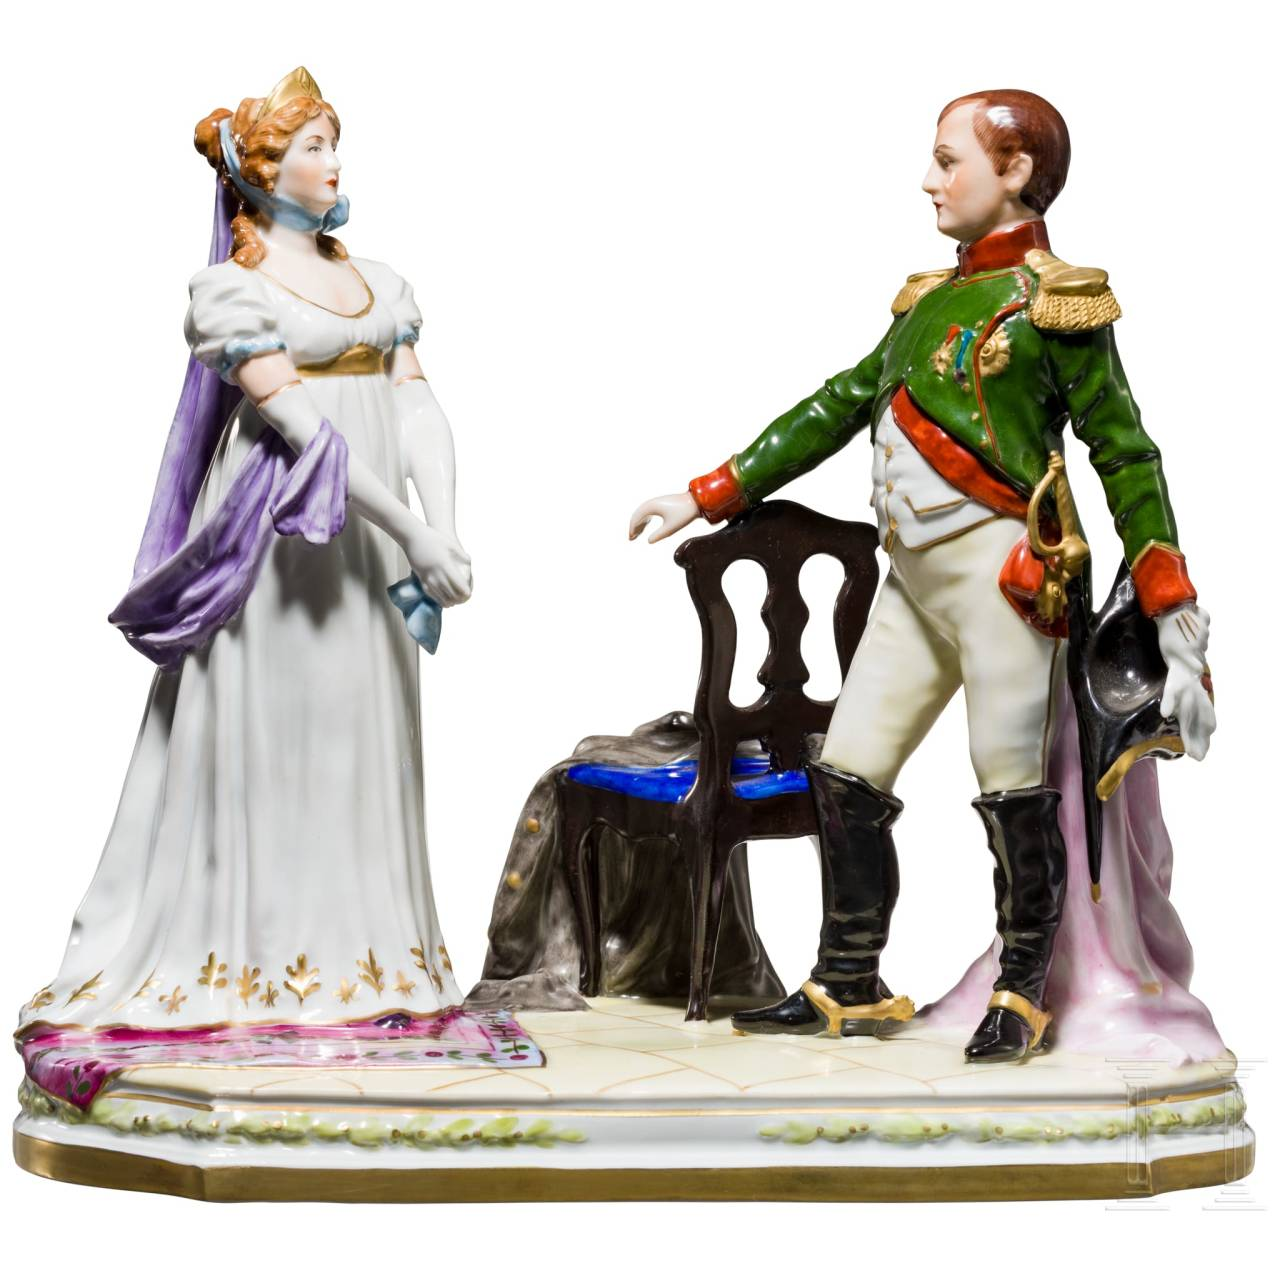 Emperor Napoleon I and Empress Josephine, Scheibe-Alsbach porcelain manufactory, 20th century